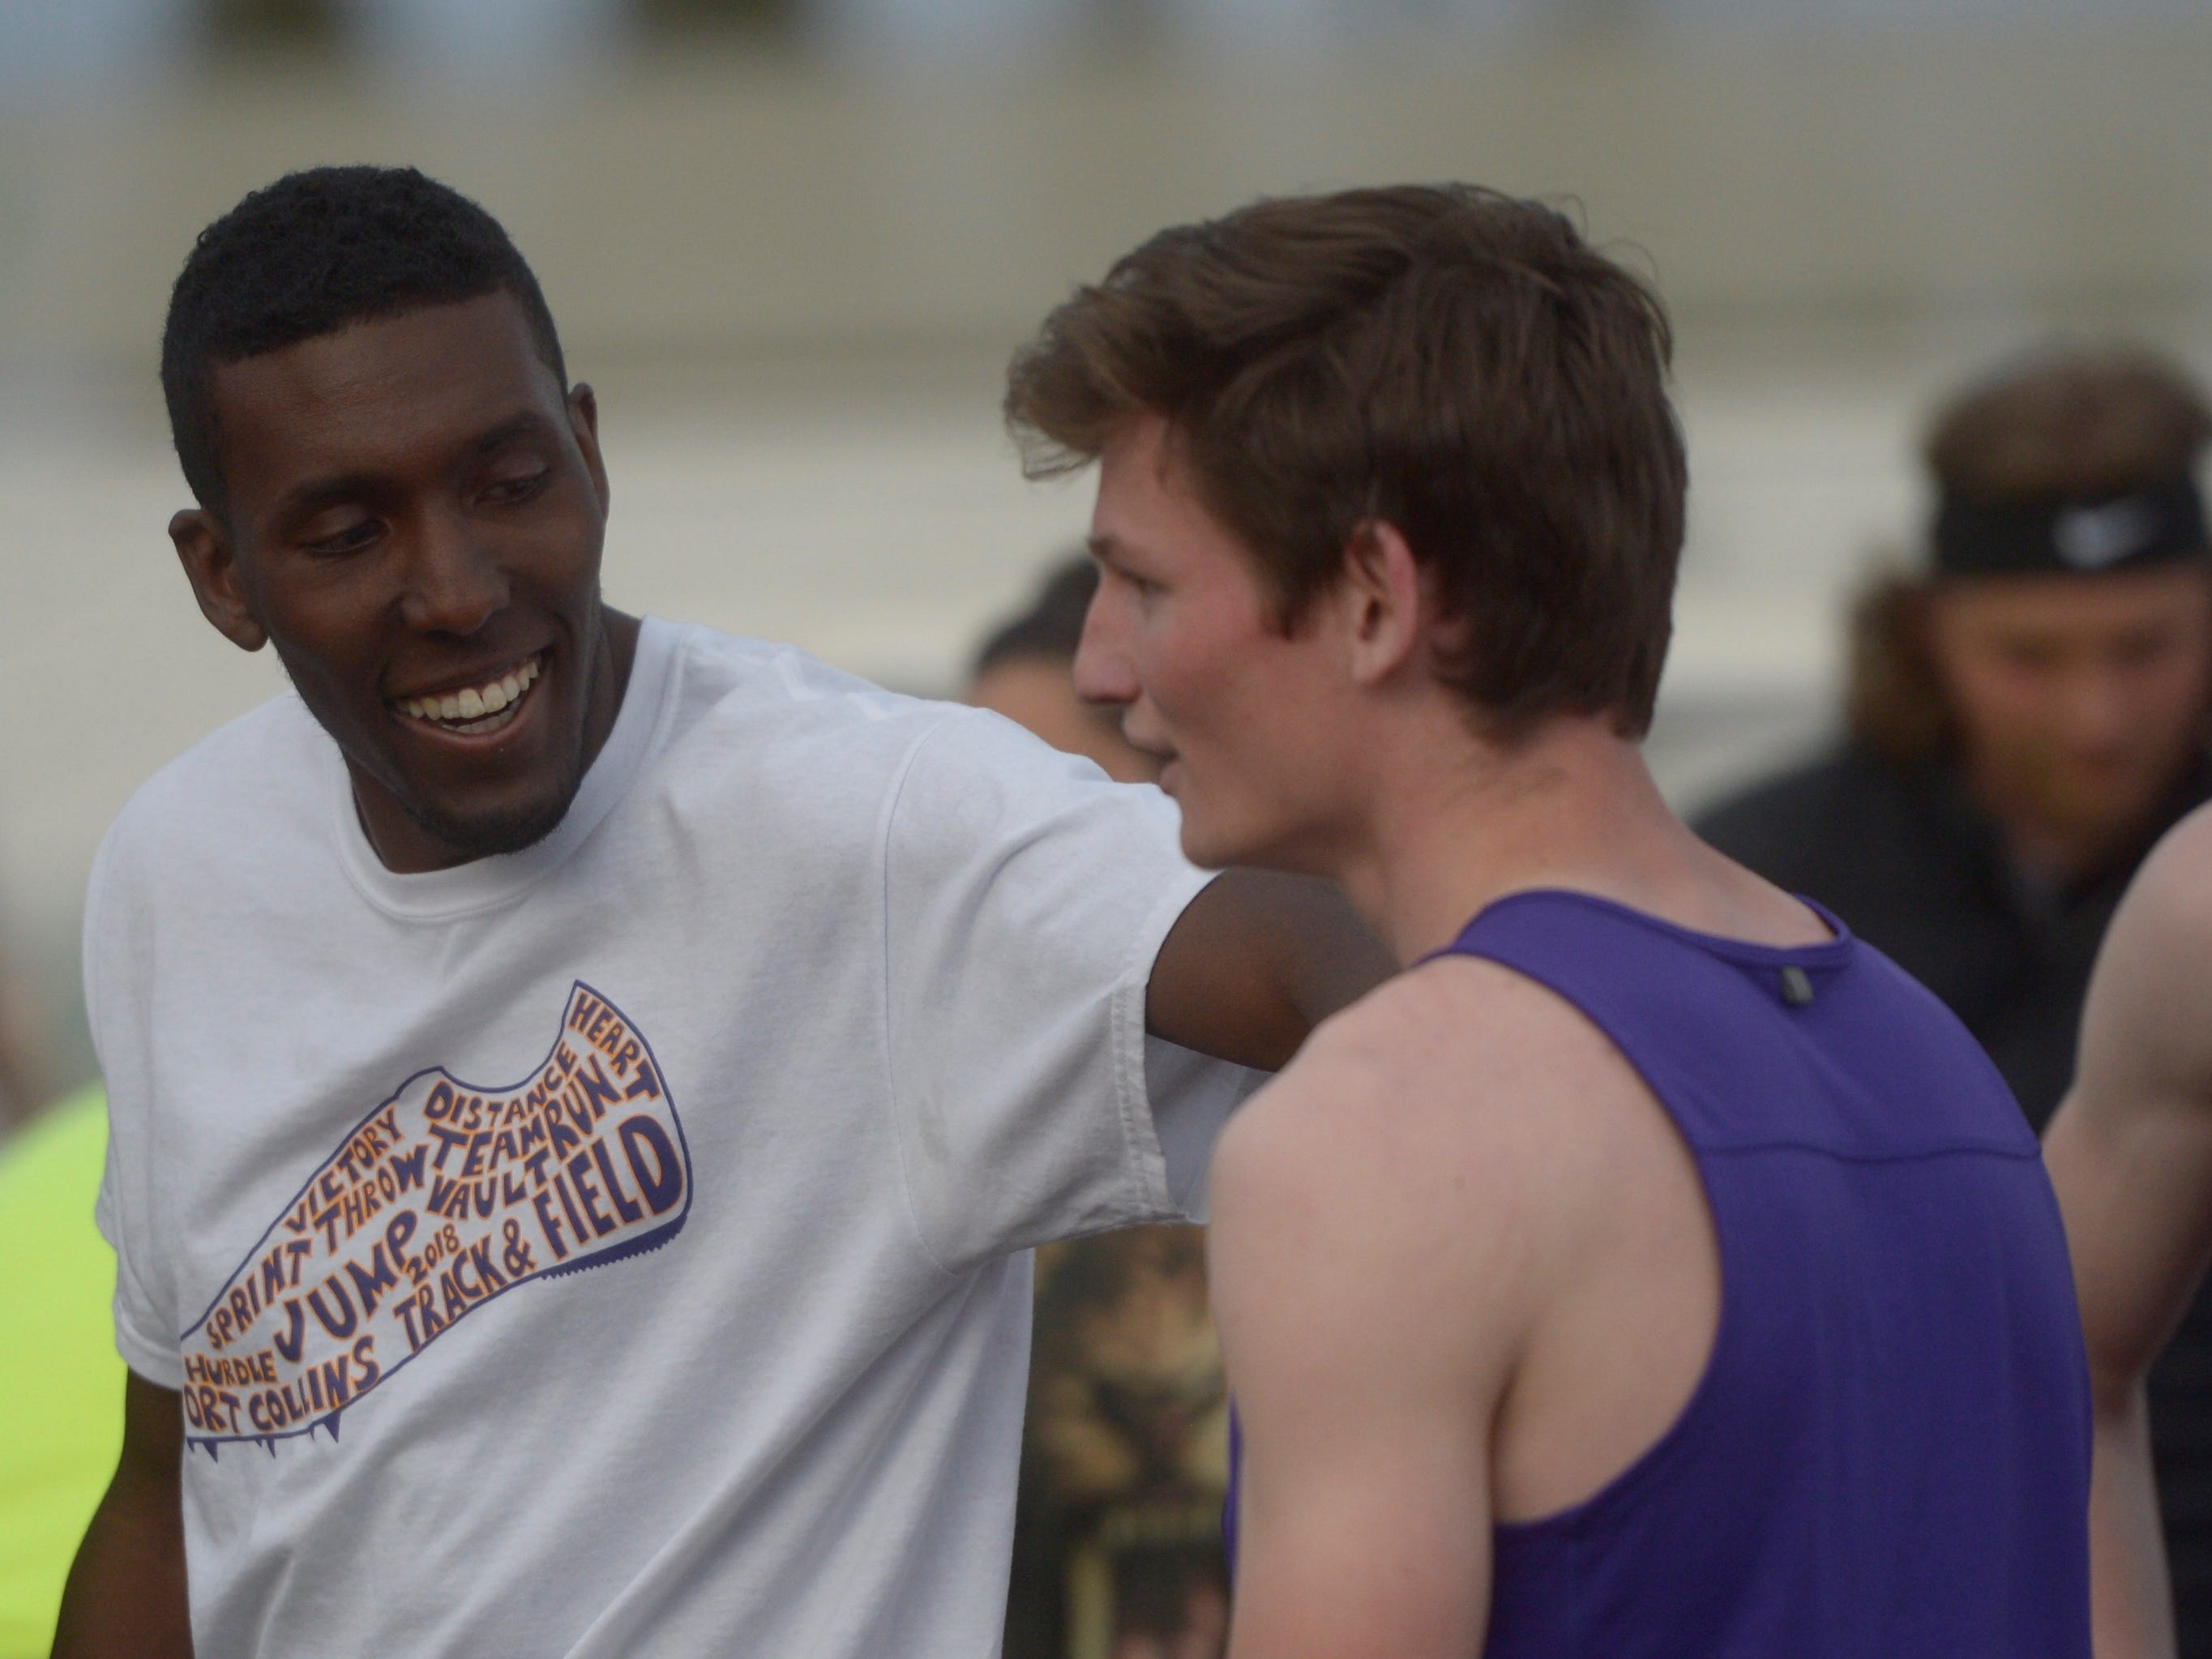 Fort Collins High School assistant coach Ray Bozmans congratulates Joey Maguire after the Lambkins won the 1,600 relay at the Fort Collins city meet at French Field on Tuesday, April 9, 2019.